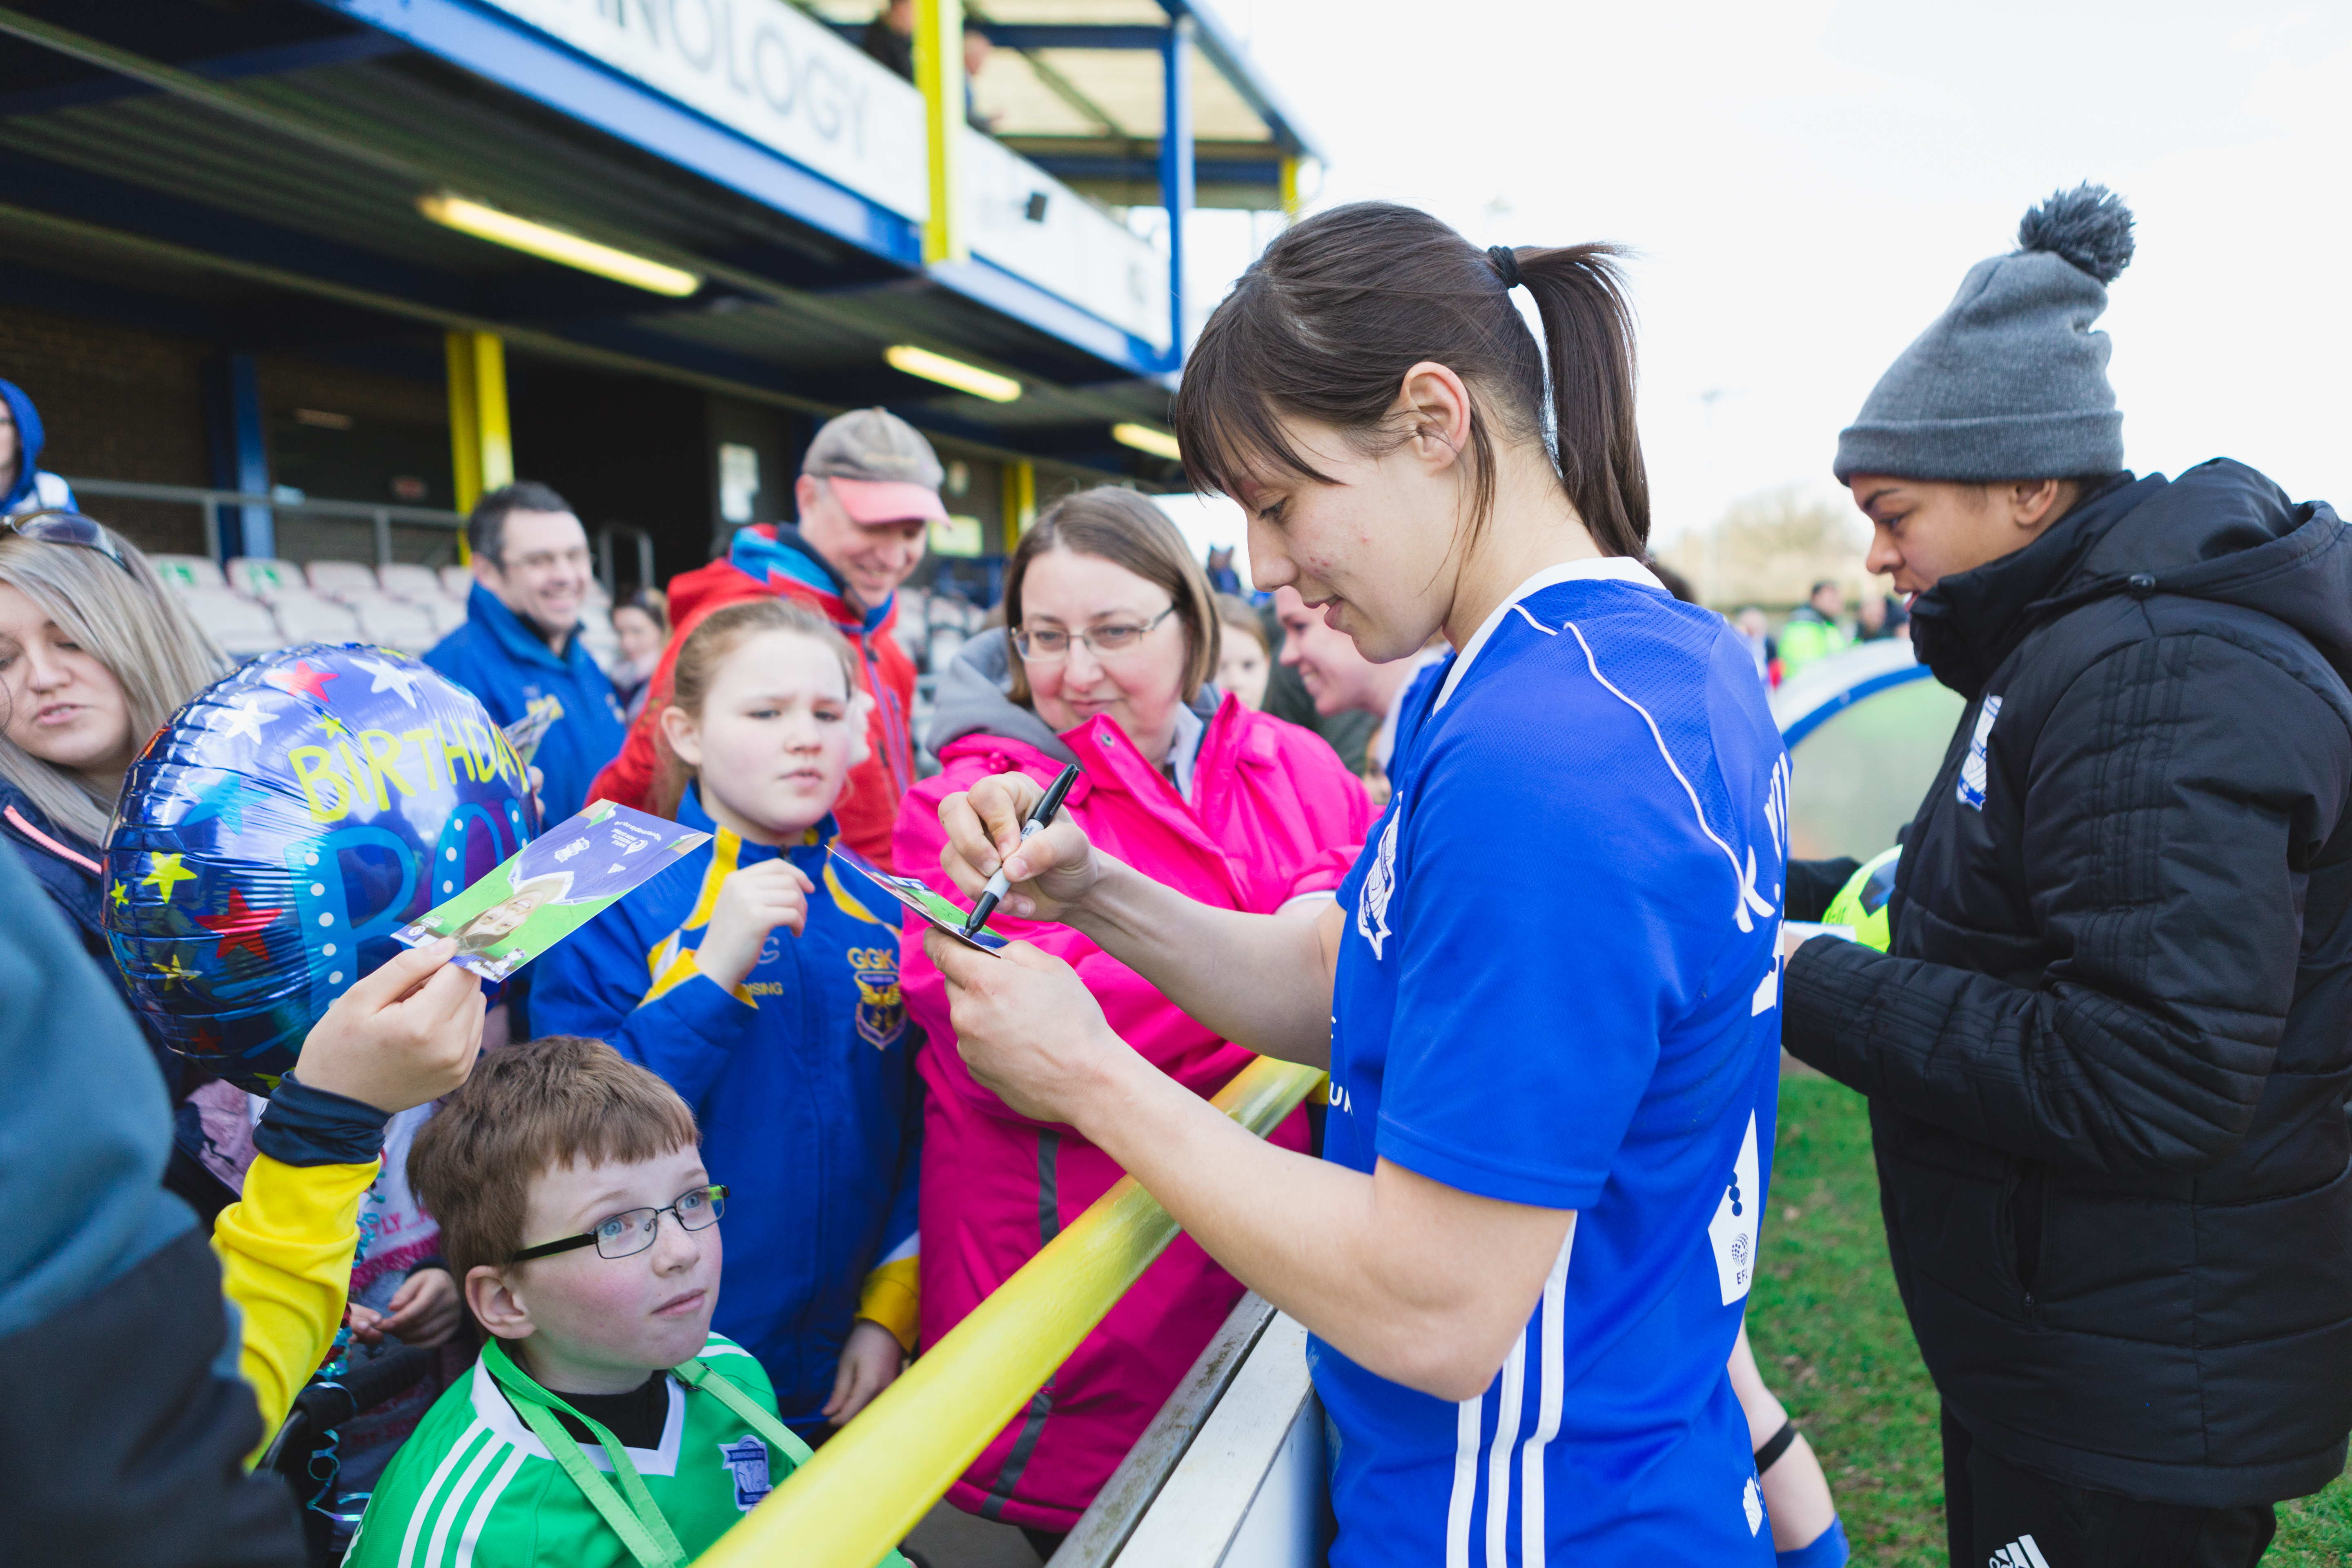 Birmingham City Ladies FC player signing autographs